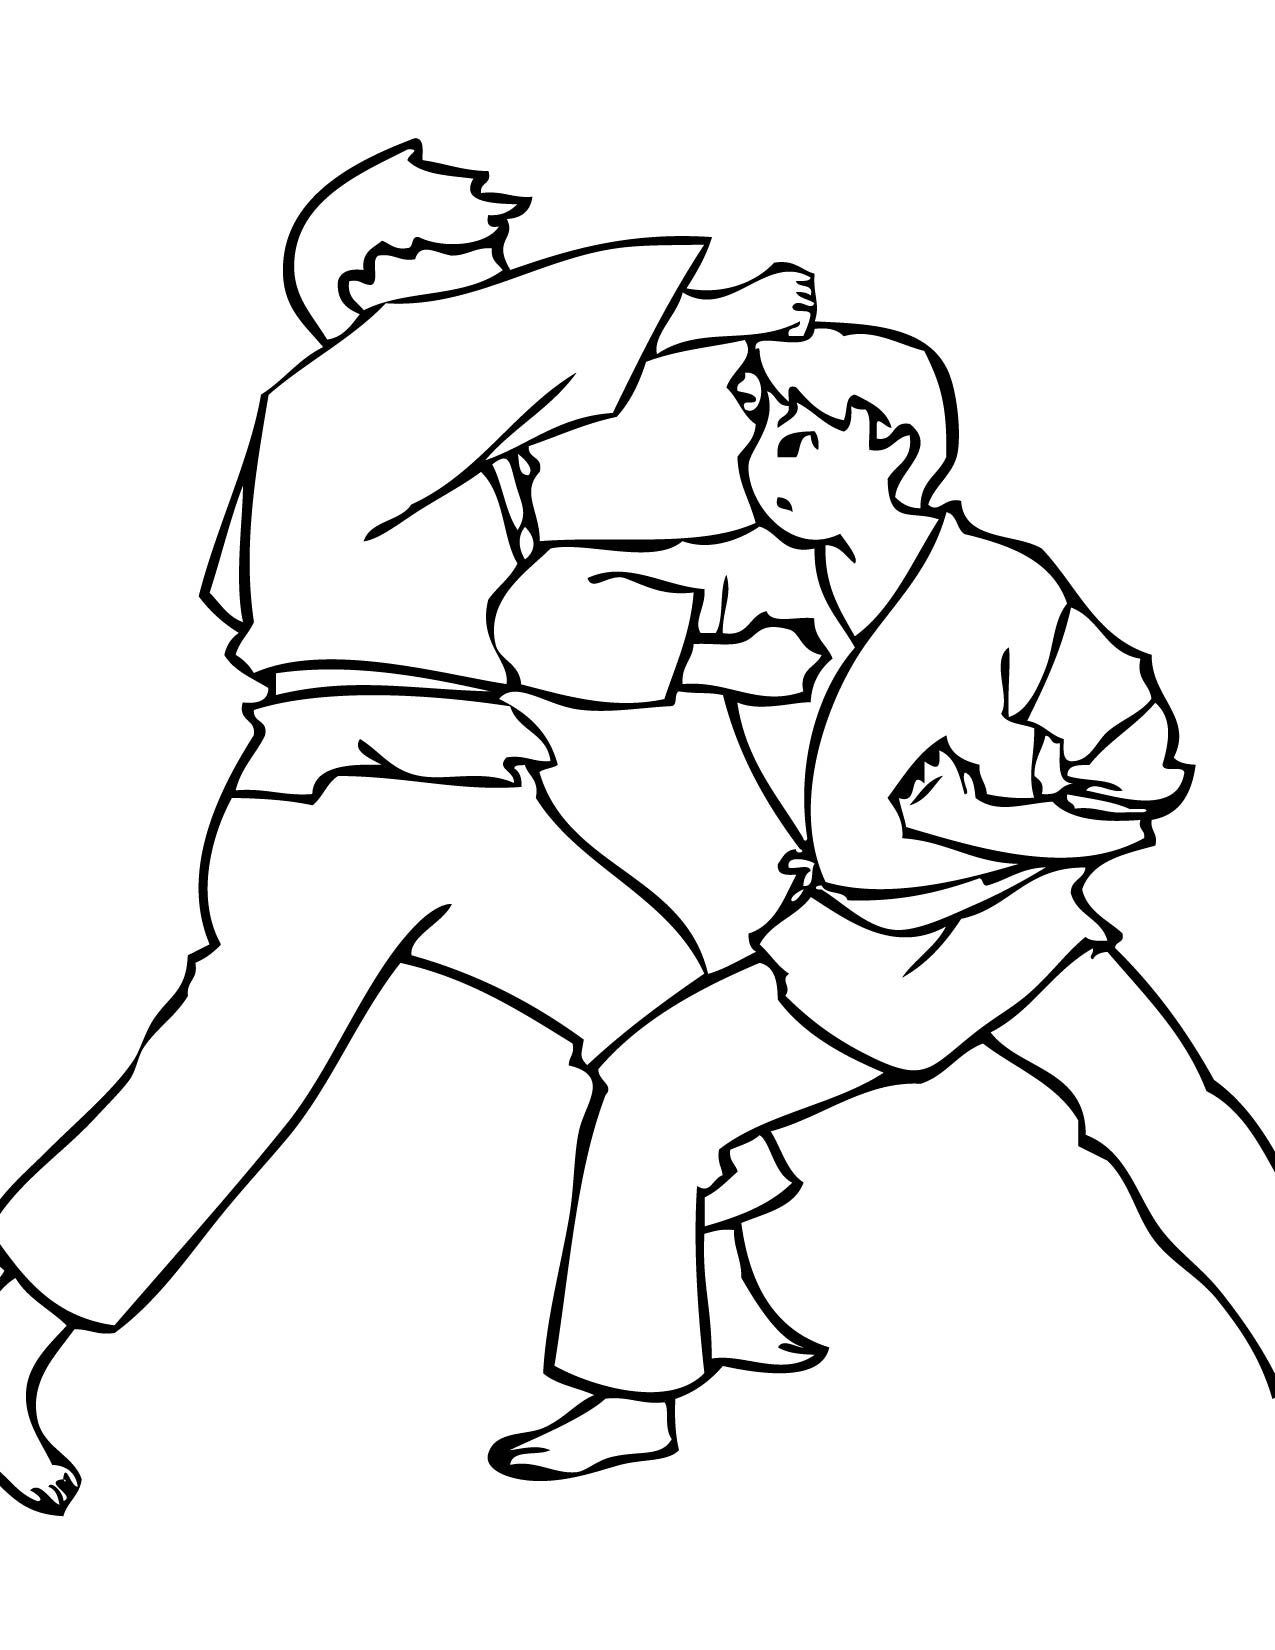 Karate Coloring Page Handipoints